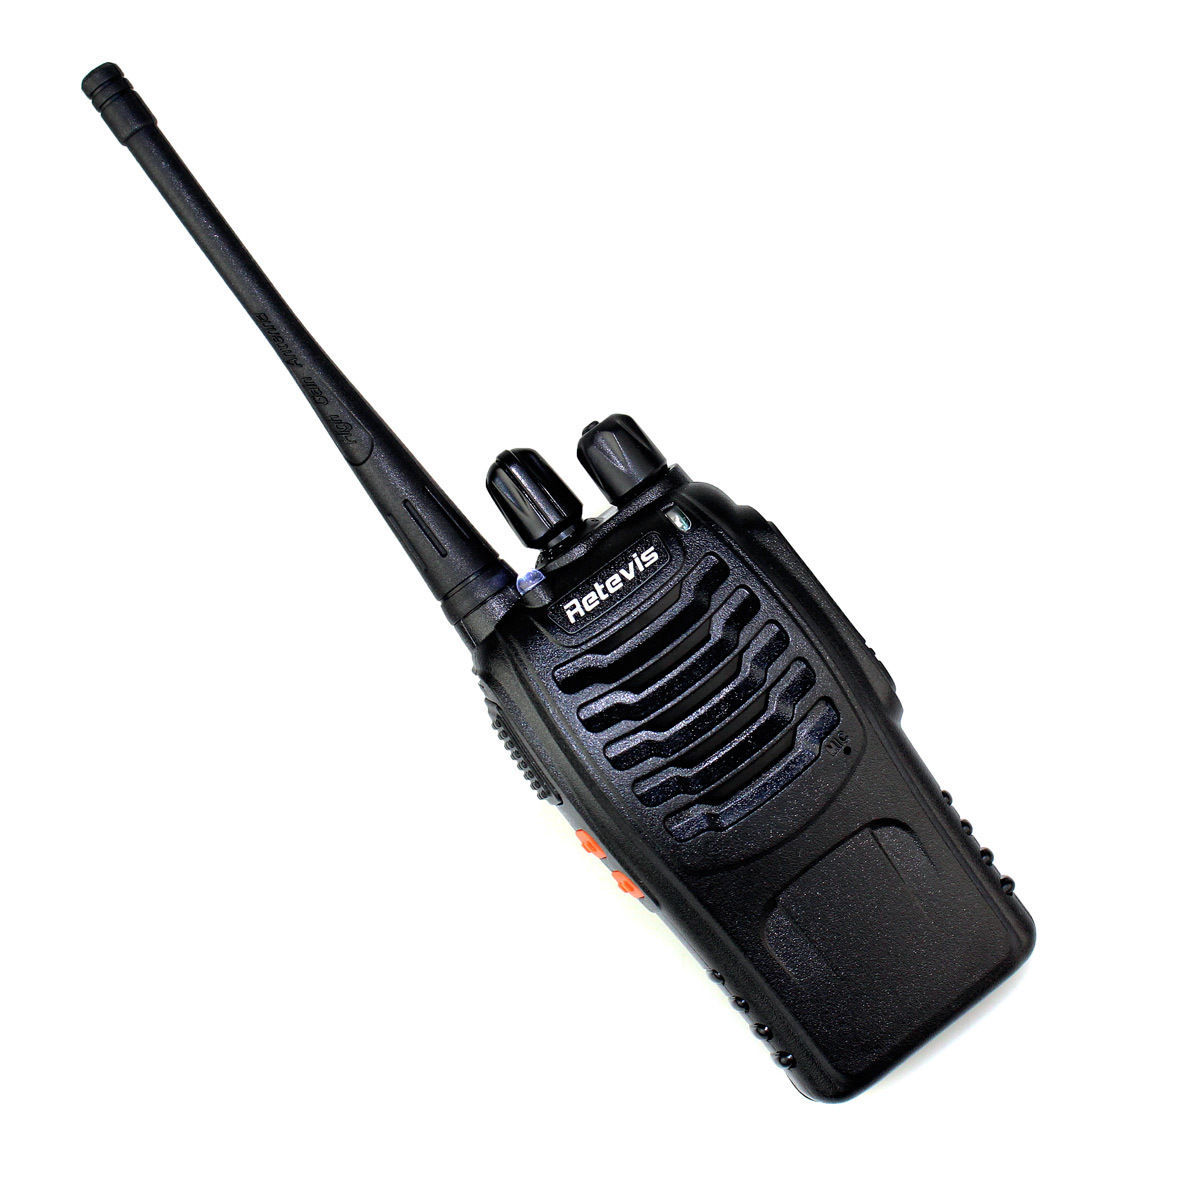 10x retevis h777 walkie talkie 16ch ctcss dcs uhf 5w two way radio earpiece walkie talkies. Black Bedroom Furniture Sets. Home Design Ideas